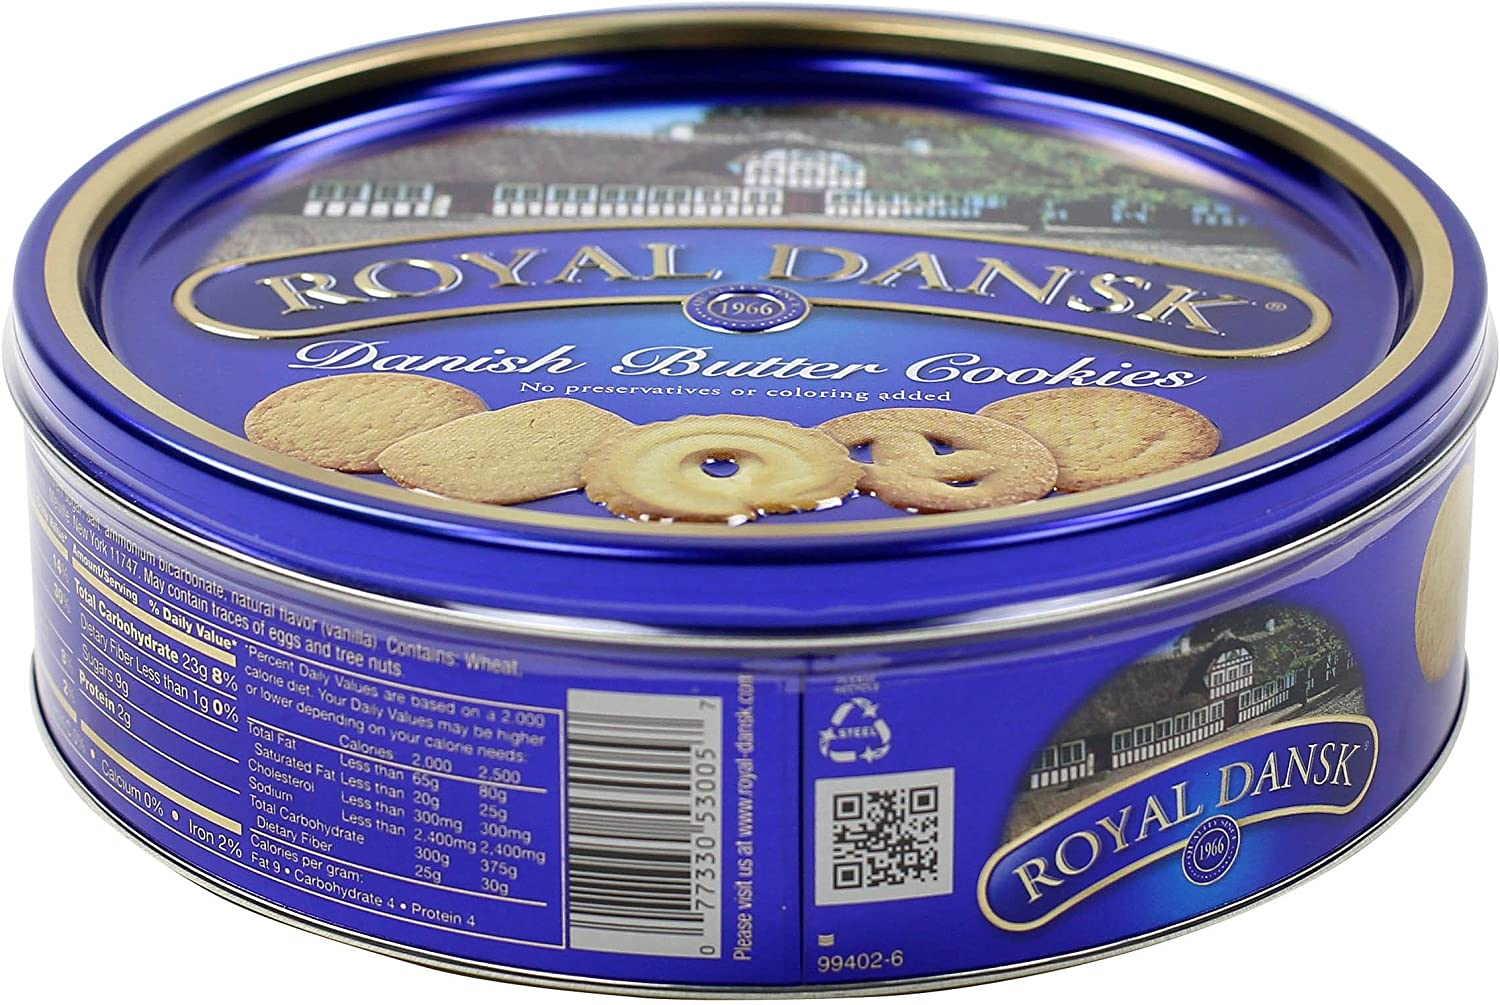 Royal Dansk Danish Cookie Selection, No Preservatives or Coloring Added